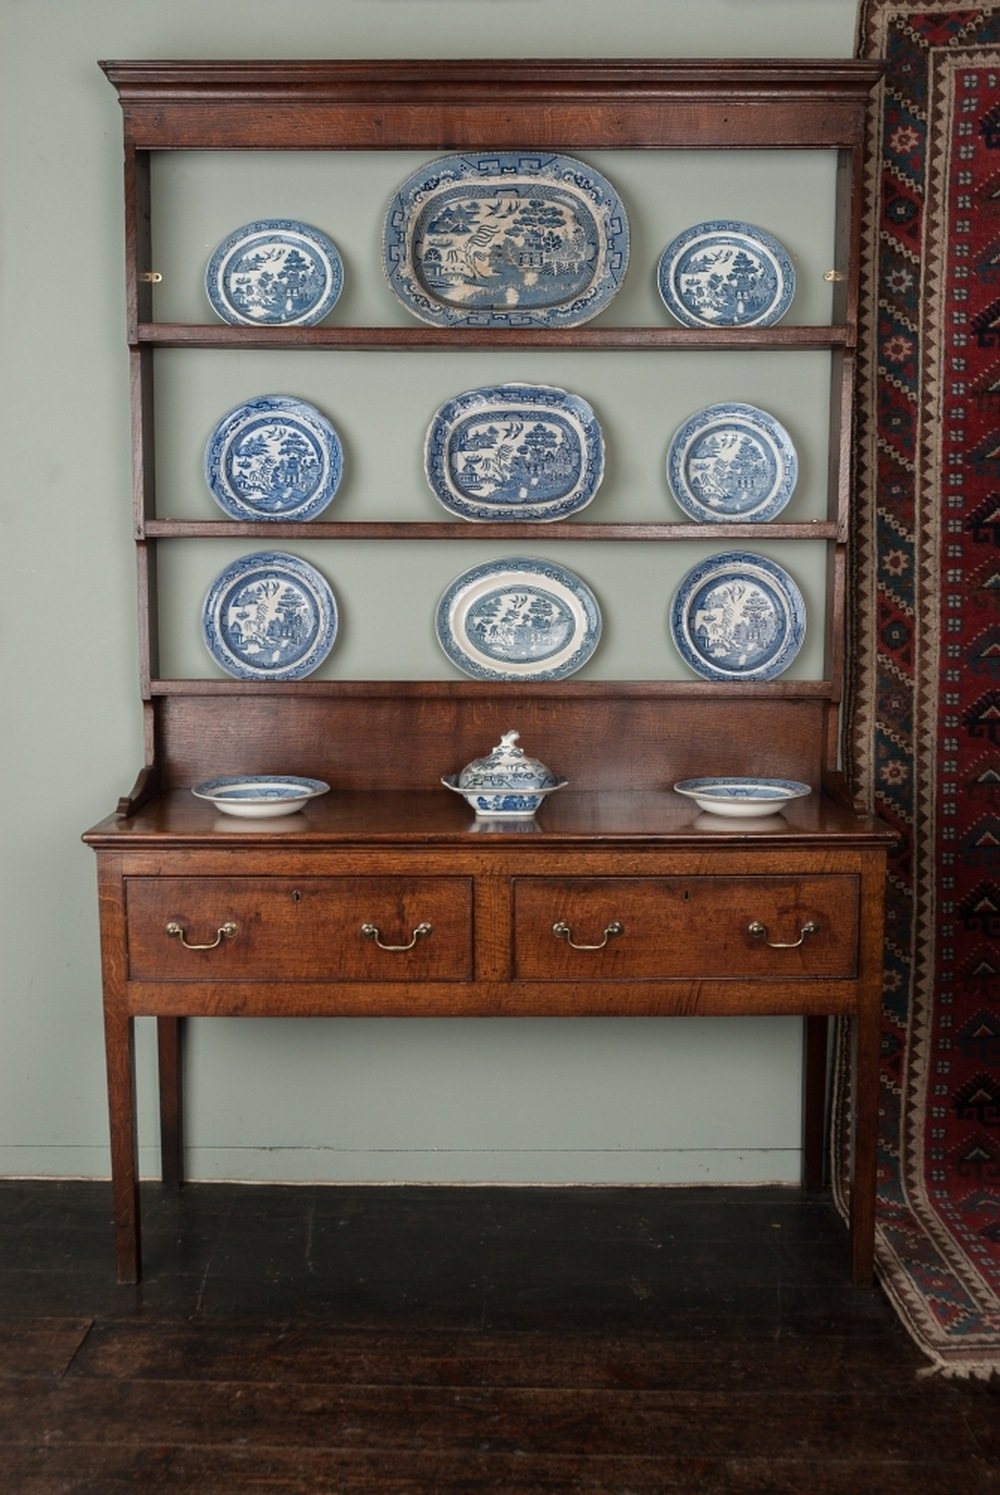 A small George III Oak dresser